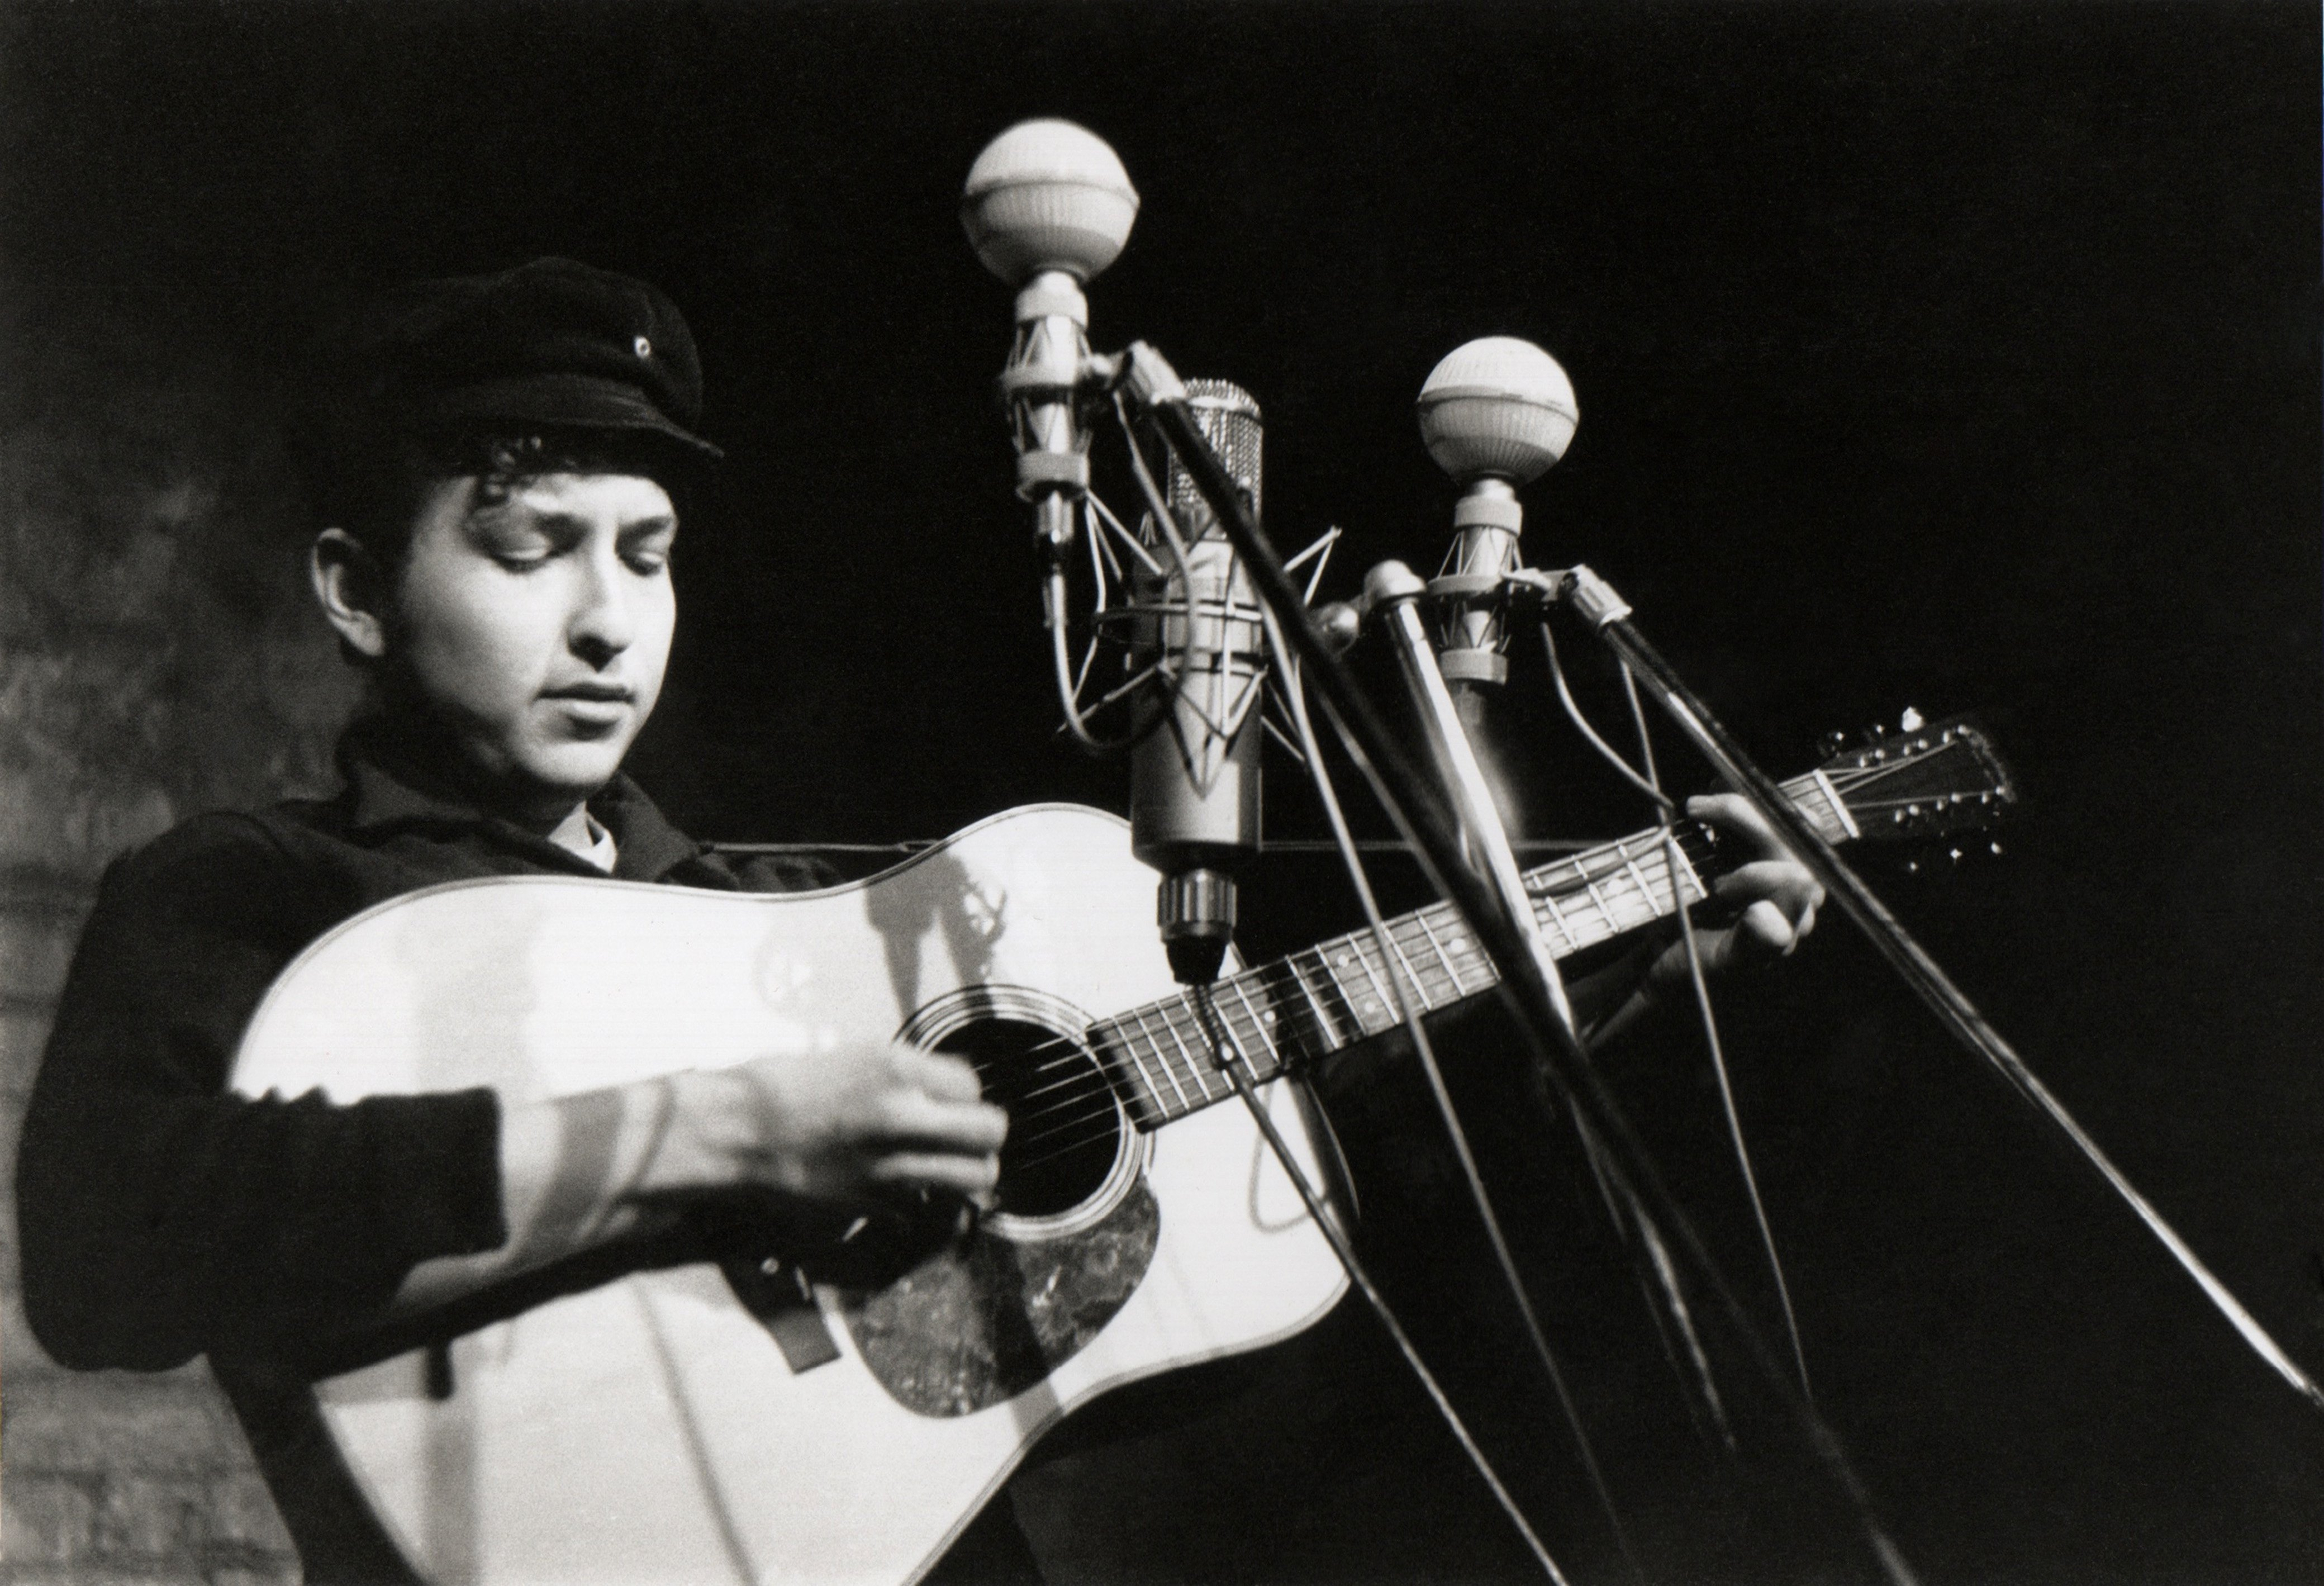 Bob Dylan performs at The Bitter End folk club in Greenwich Village in 1961 in New York City, New York.